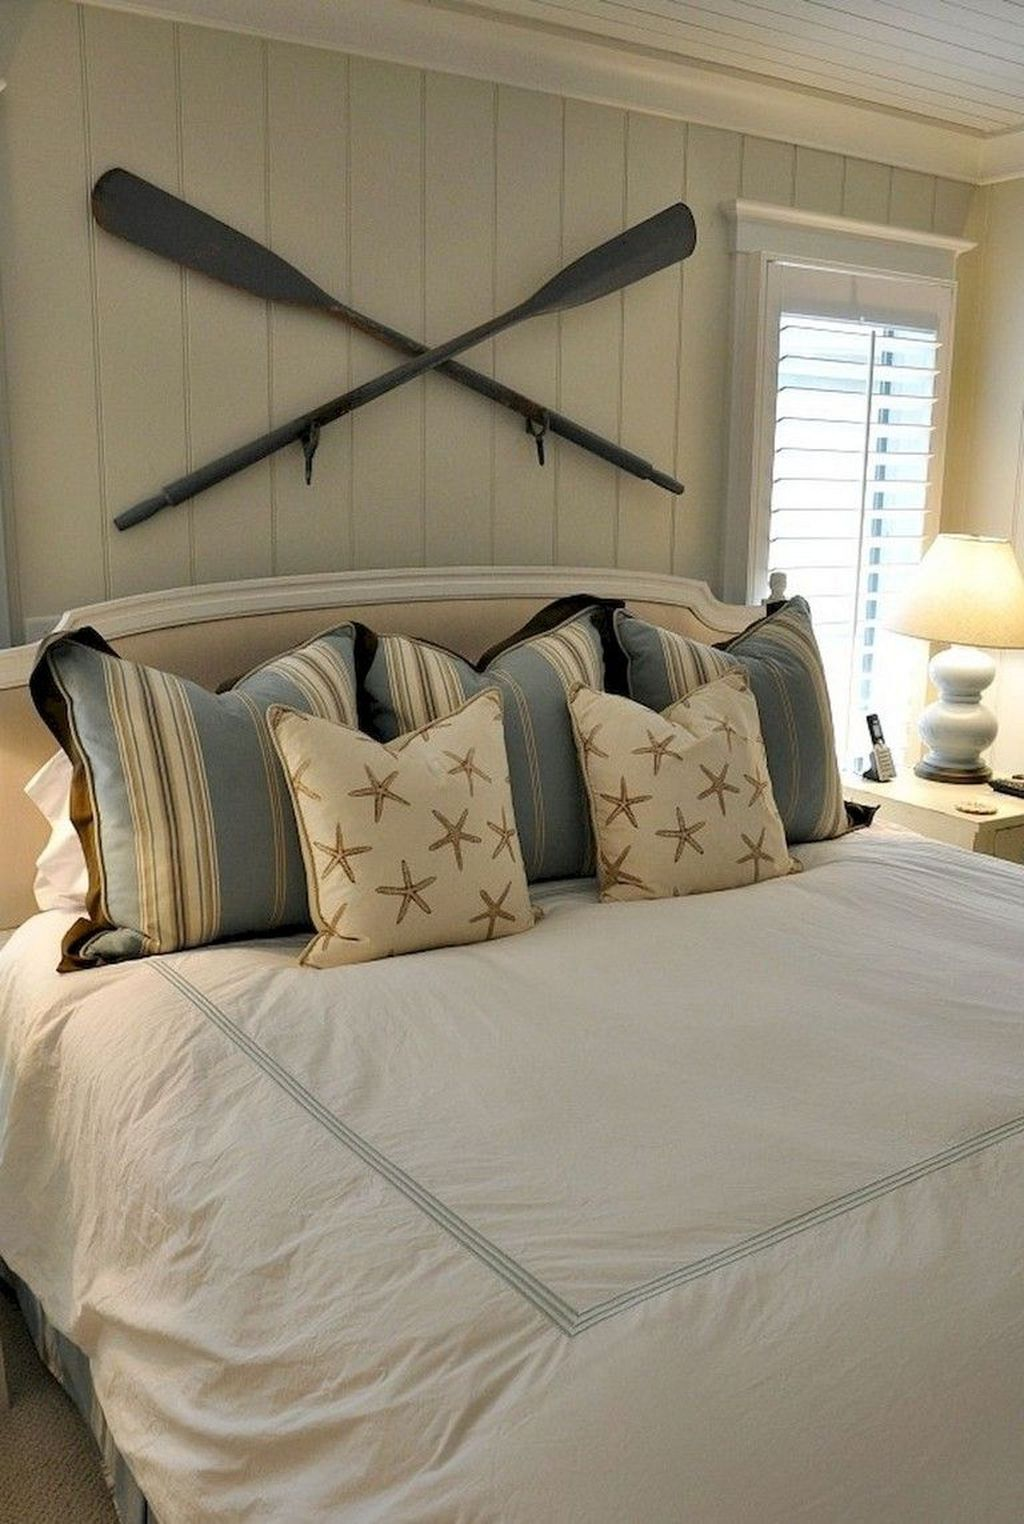 The Best Lake House Bedroom Design And Decor Ideas 29